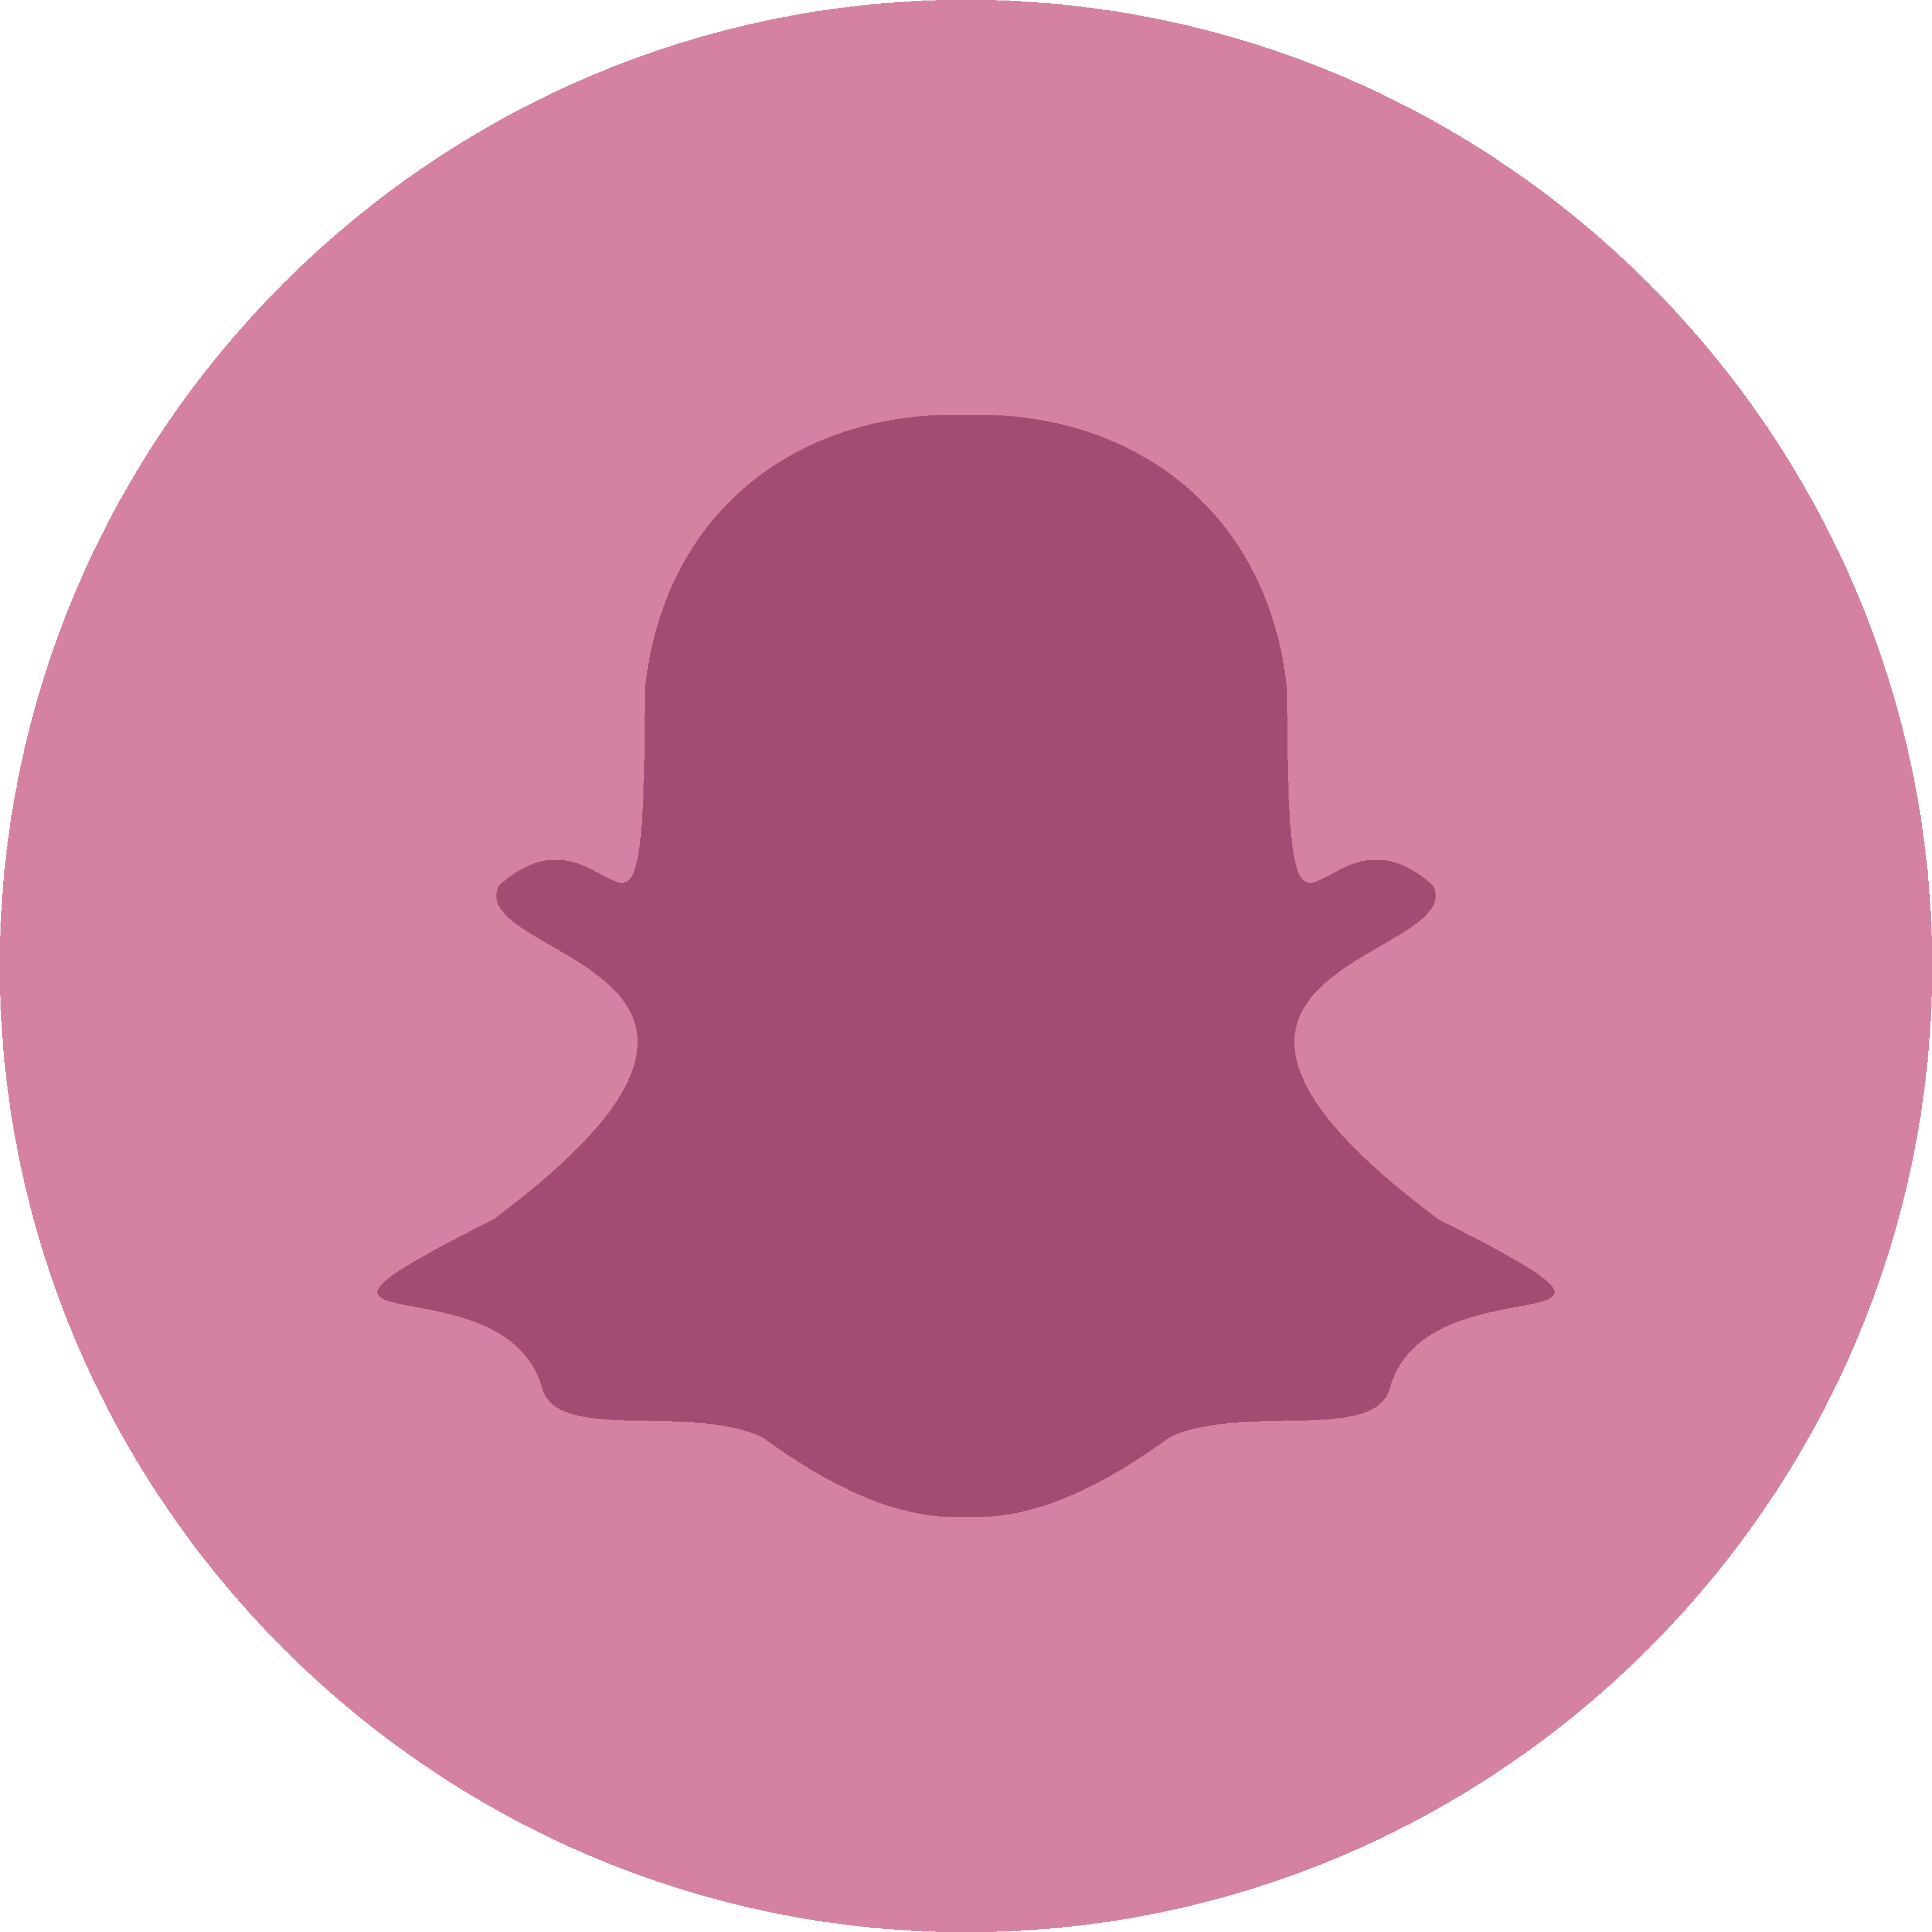 Snap Chat icon PNG Image